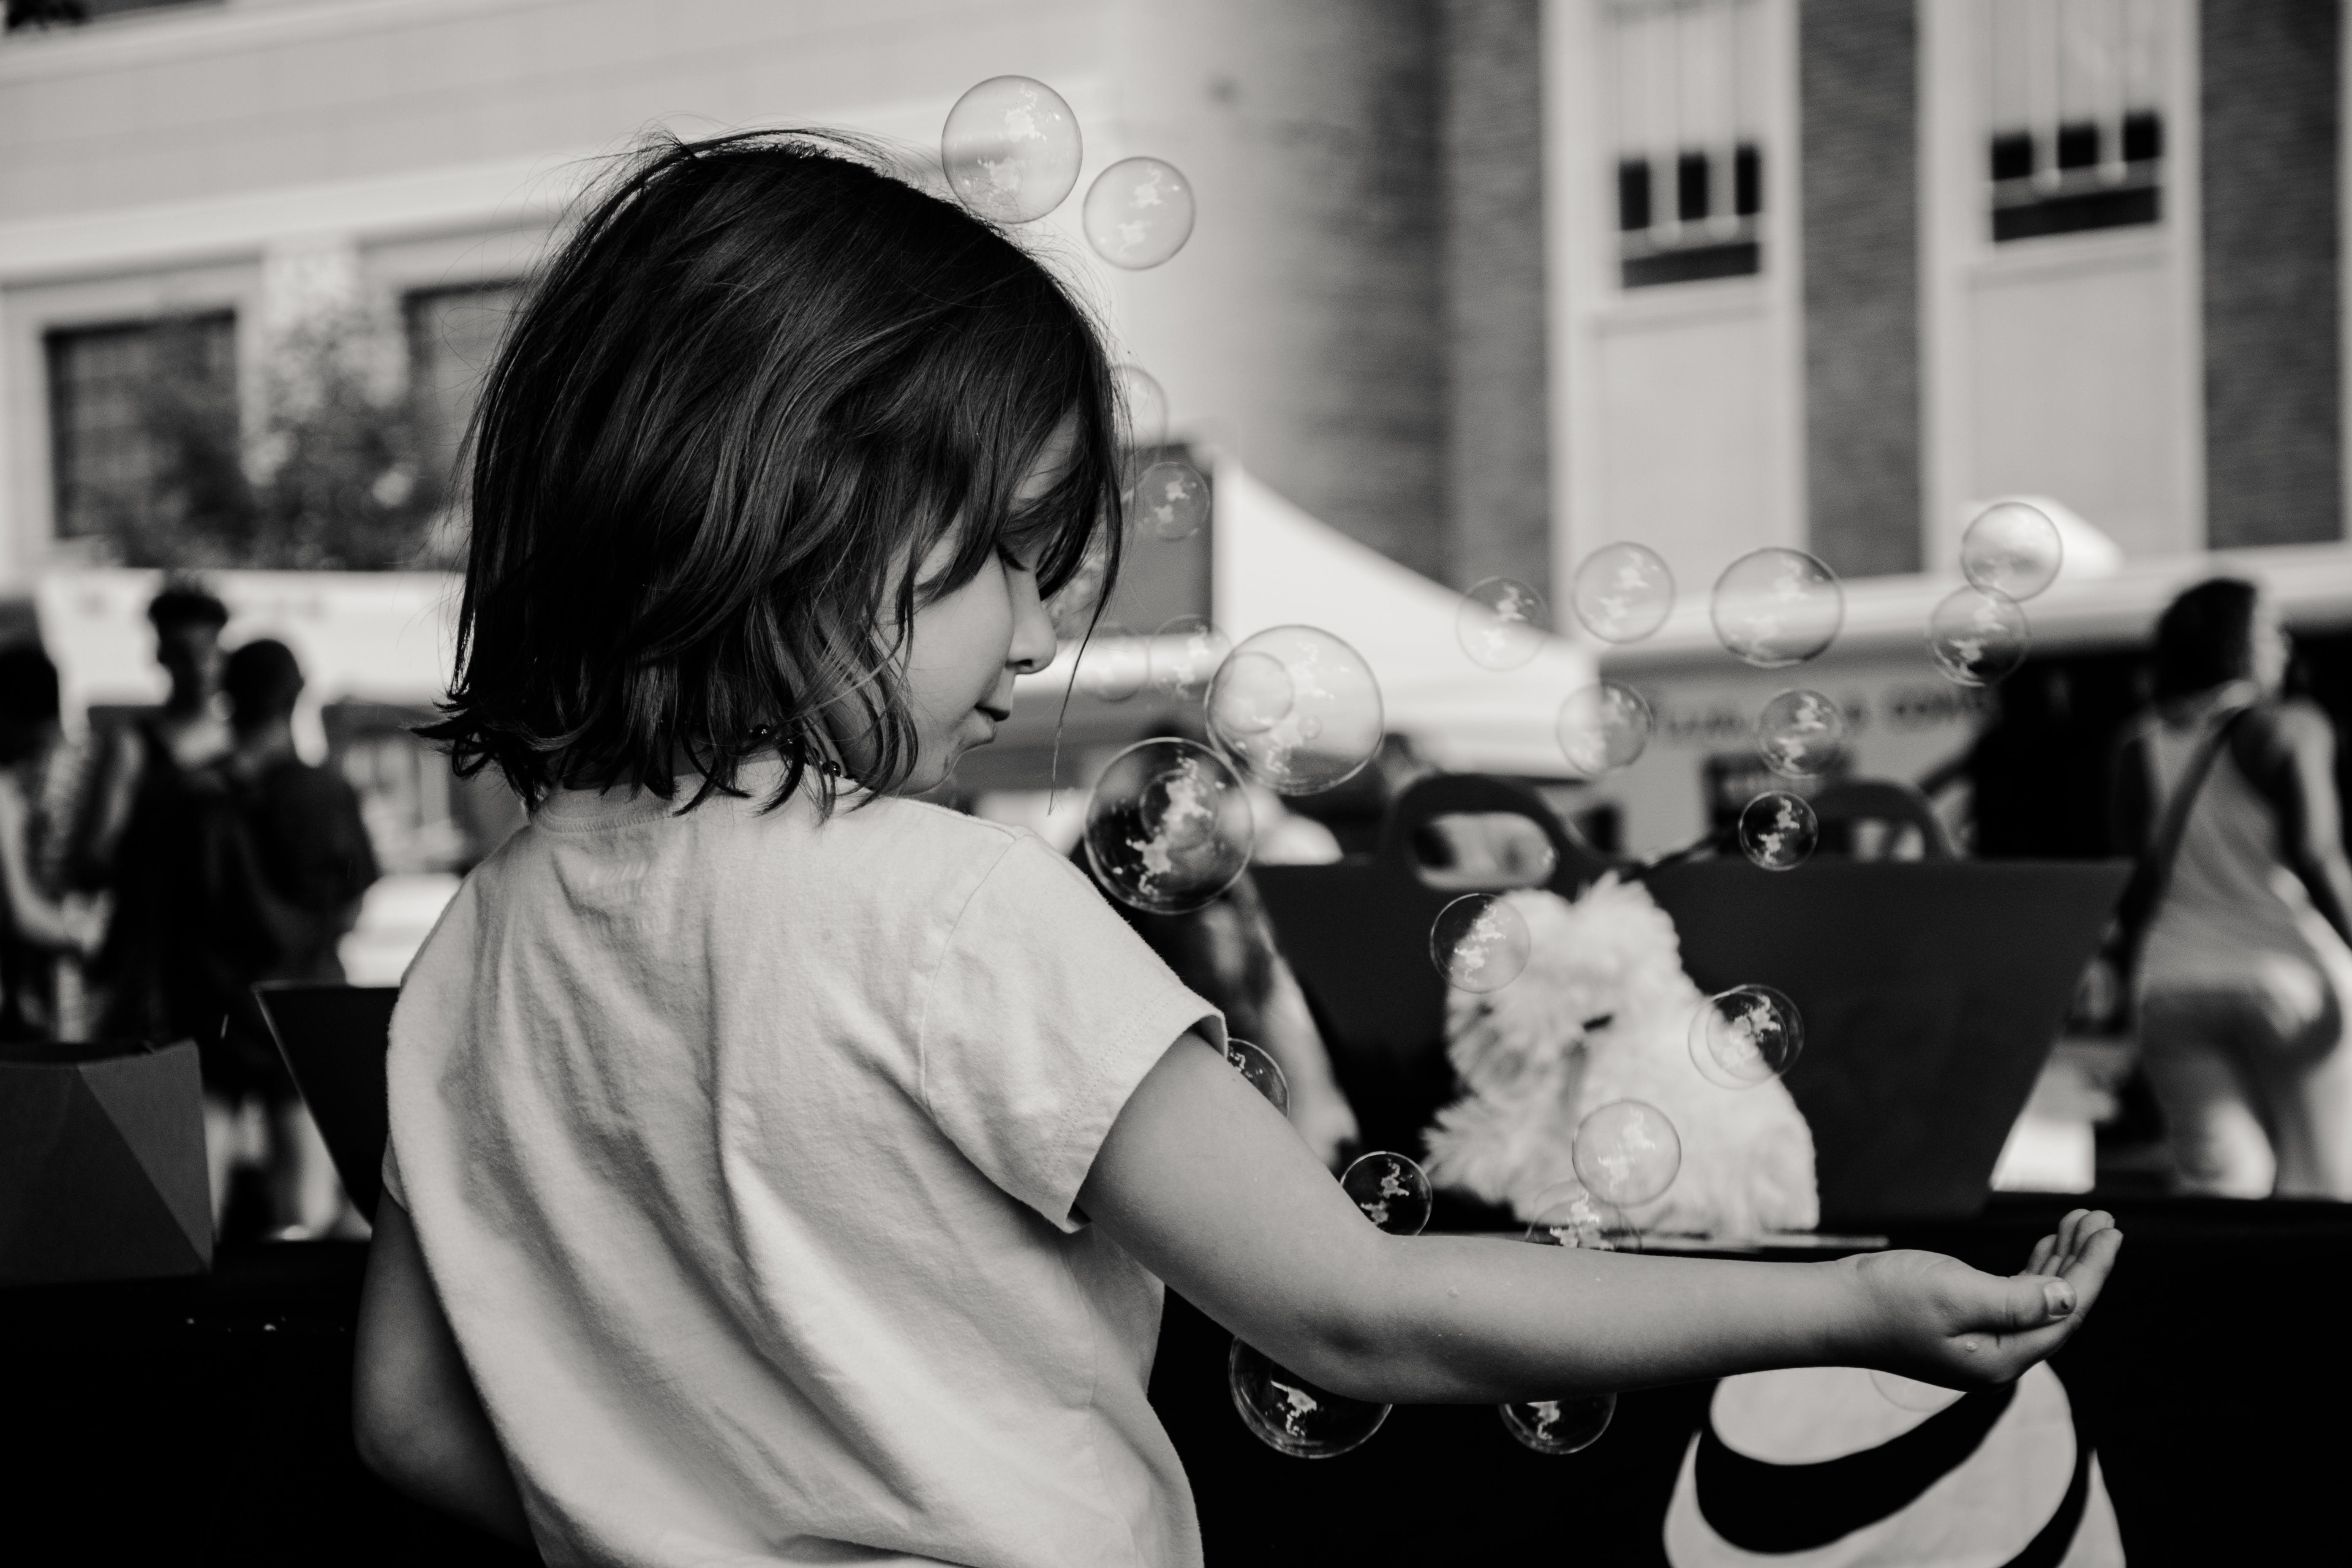 Monochrome Photography of Girl Playing With Bubbles